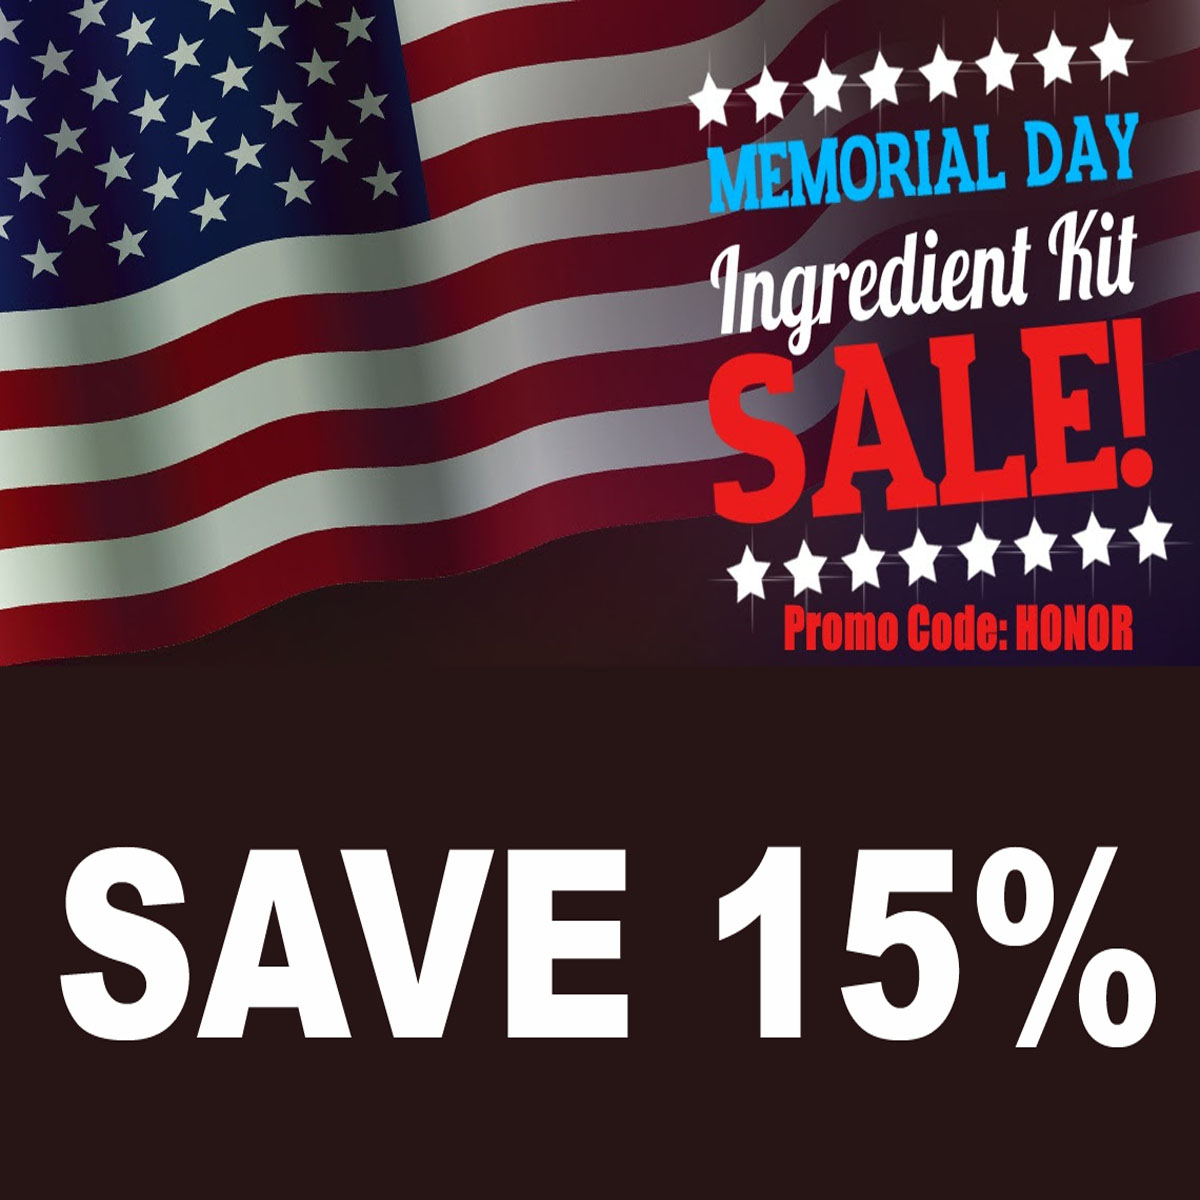 Coupon Code For Save 15% On American Style Beer Kits at More Beer! Coupon Code